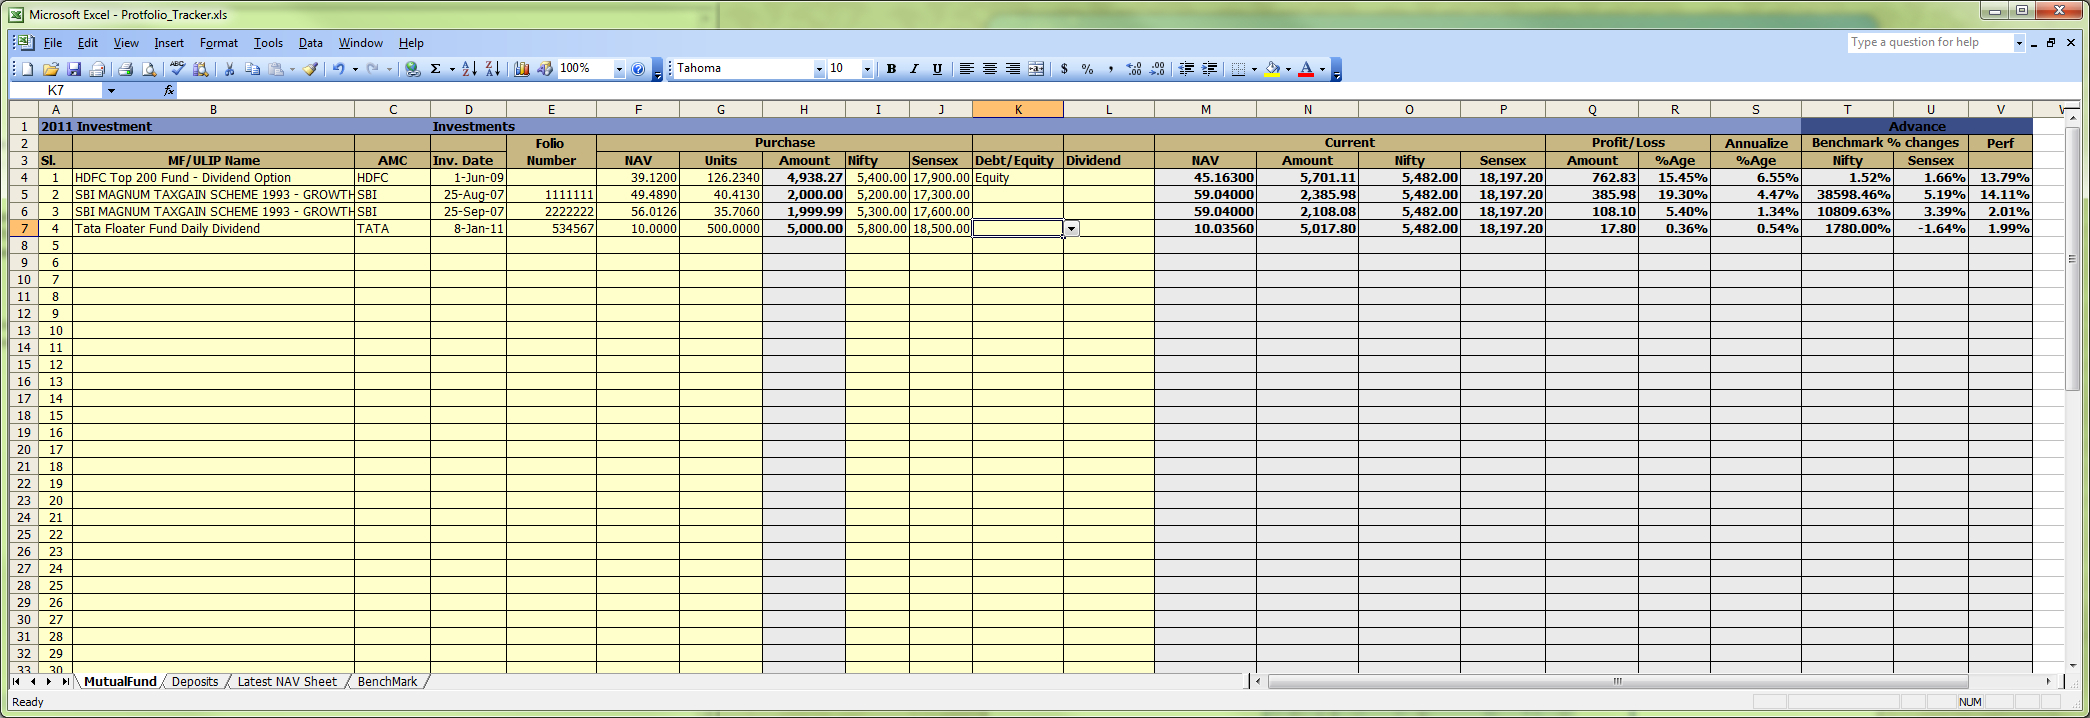 fifo spreadsheet template - inventory tracking template excel inventory spreadshee